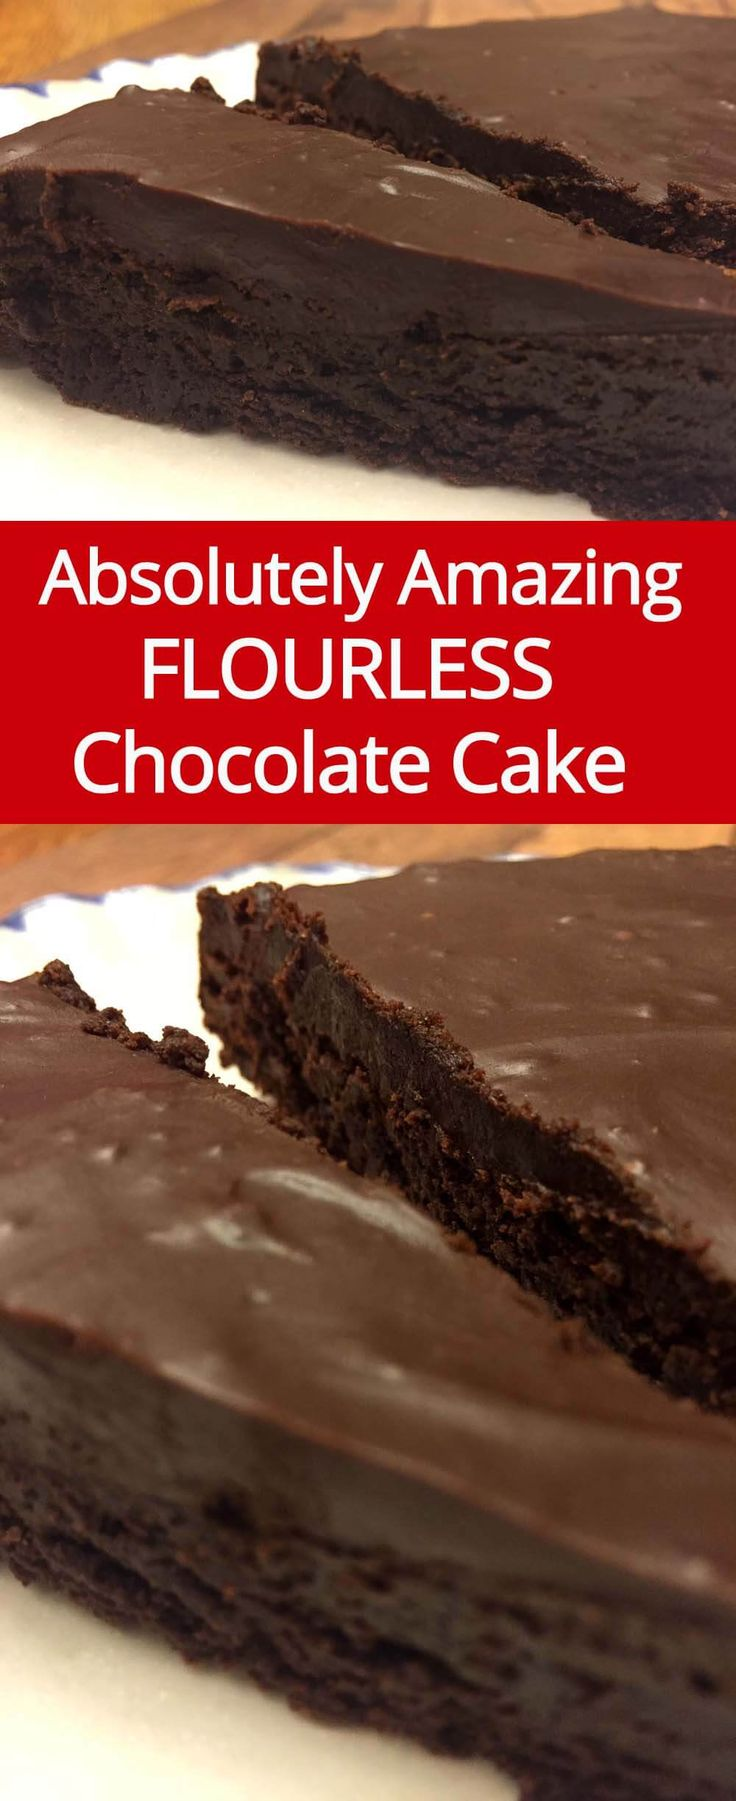 Flourless Gluten-Free Chocolate Cake with Chocolate Ganache Glaze